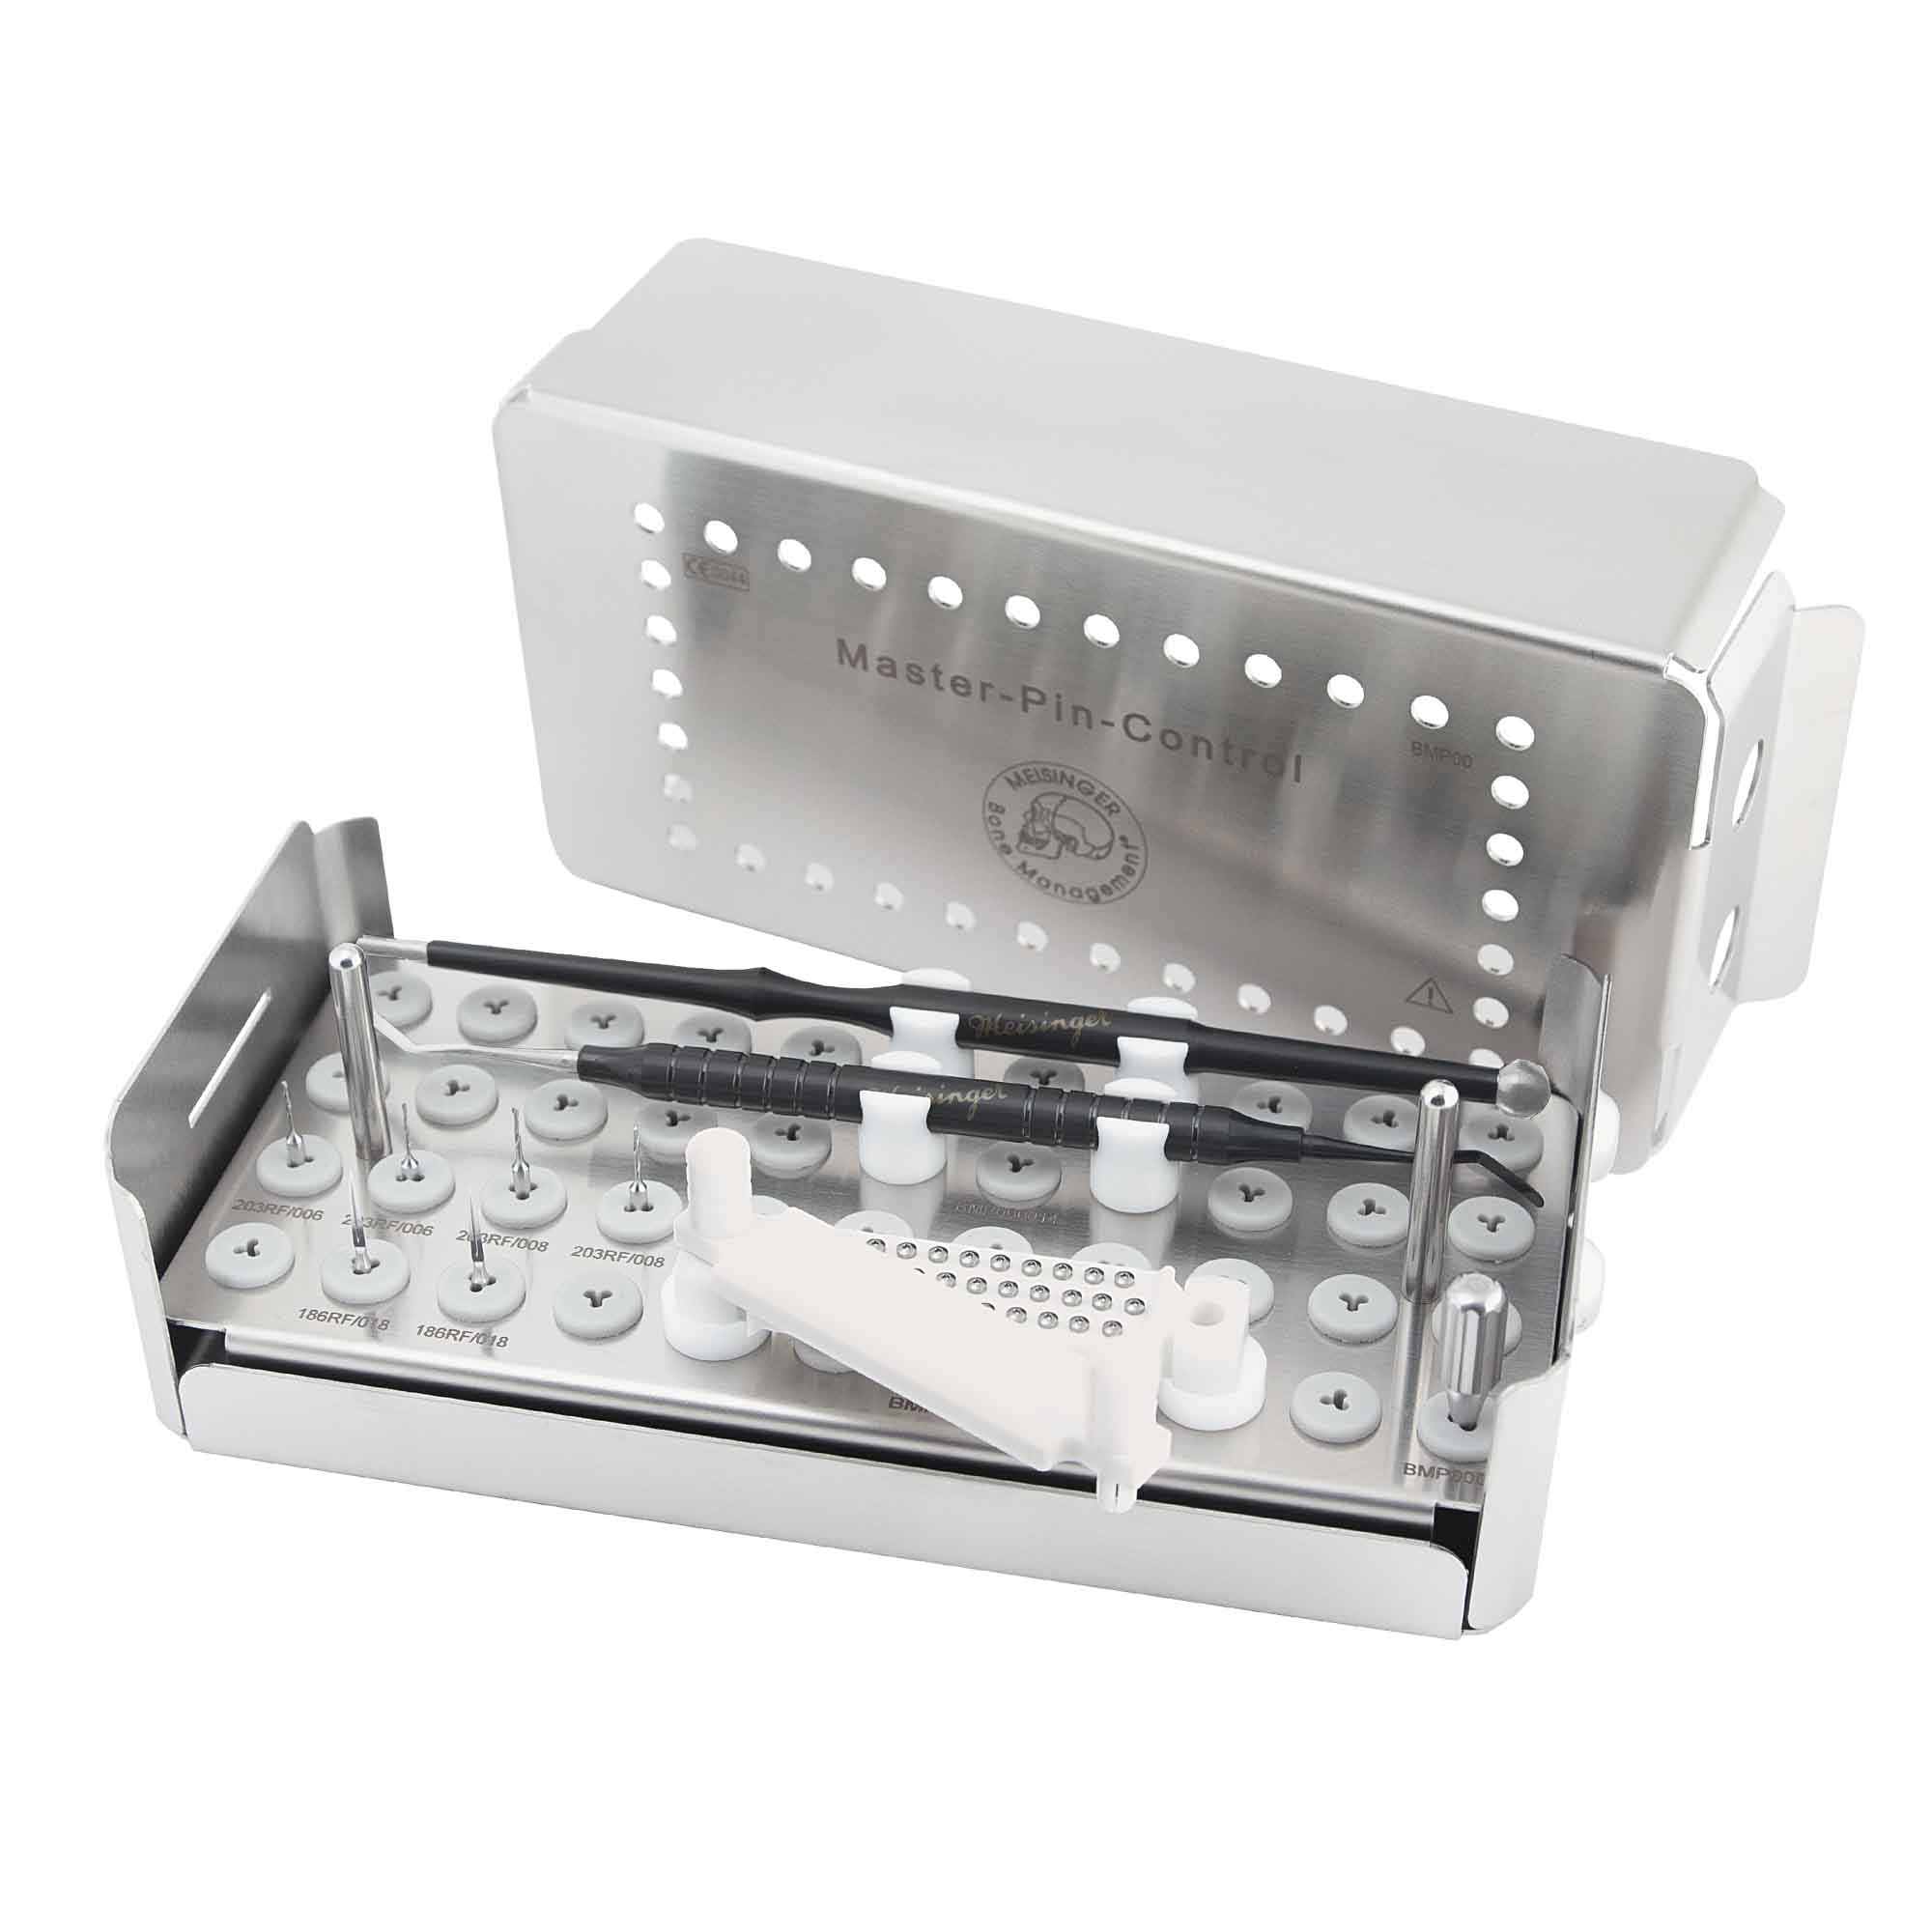 BMP00 Master-Pin-Control Kit, Pin System for Membrane Fixation, 34 Pins